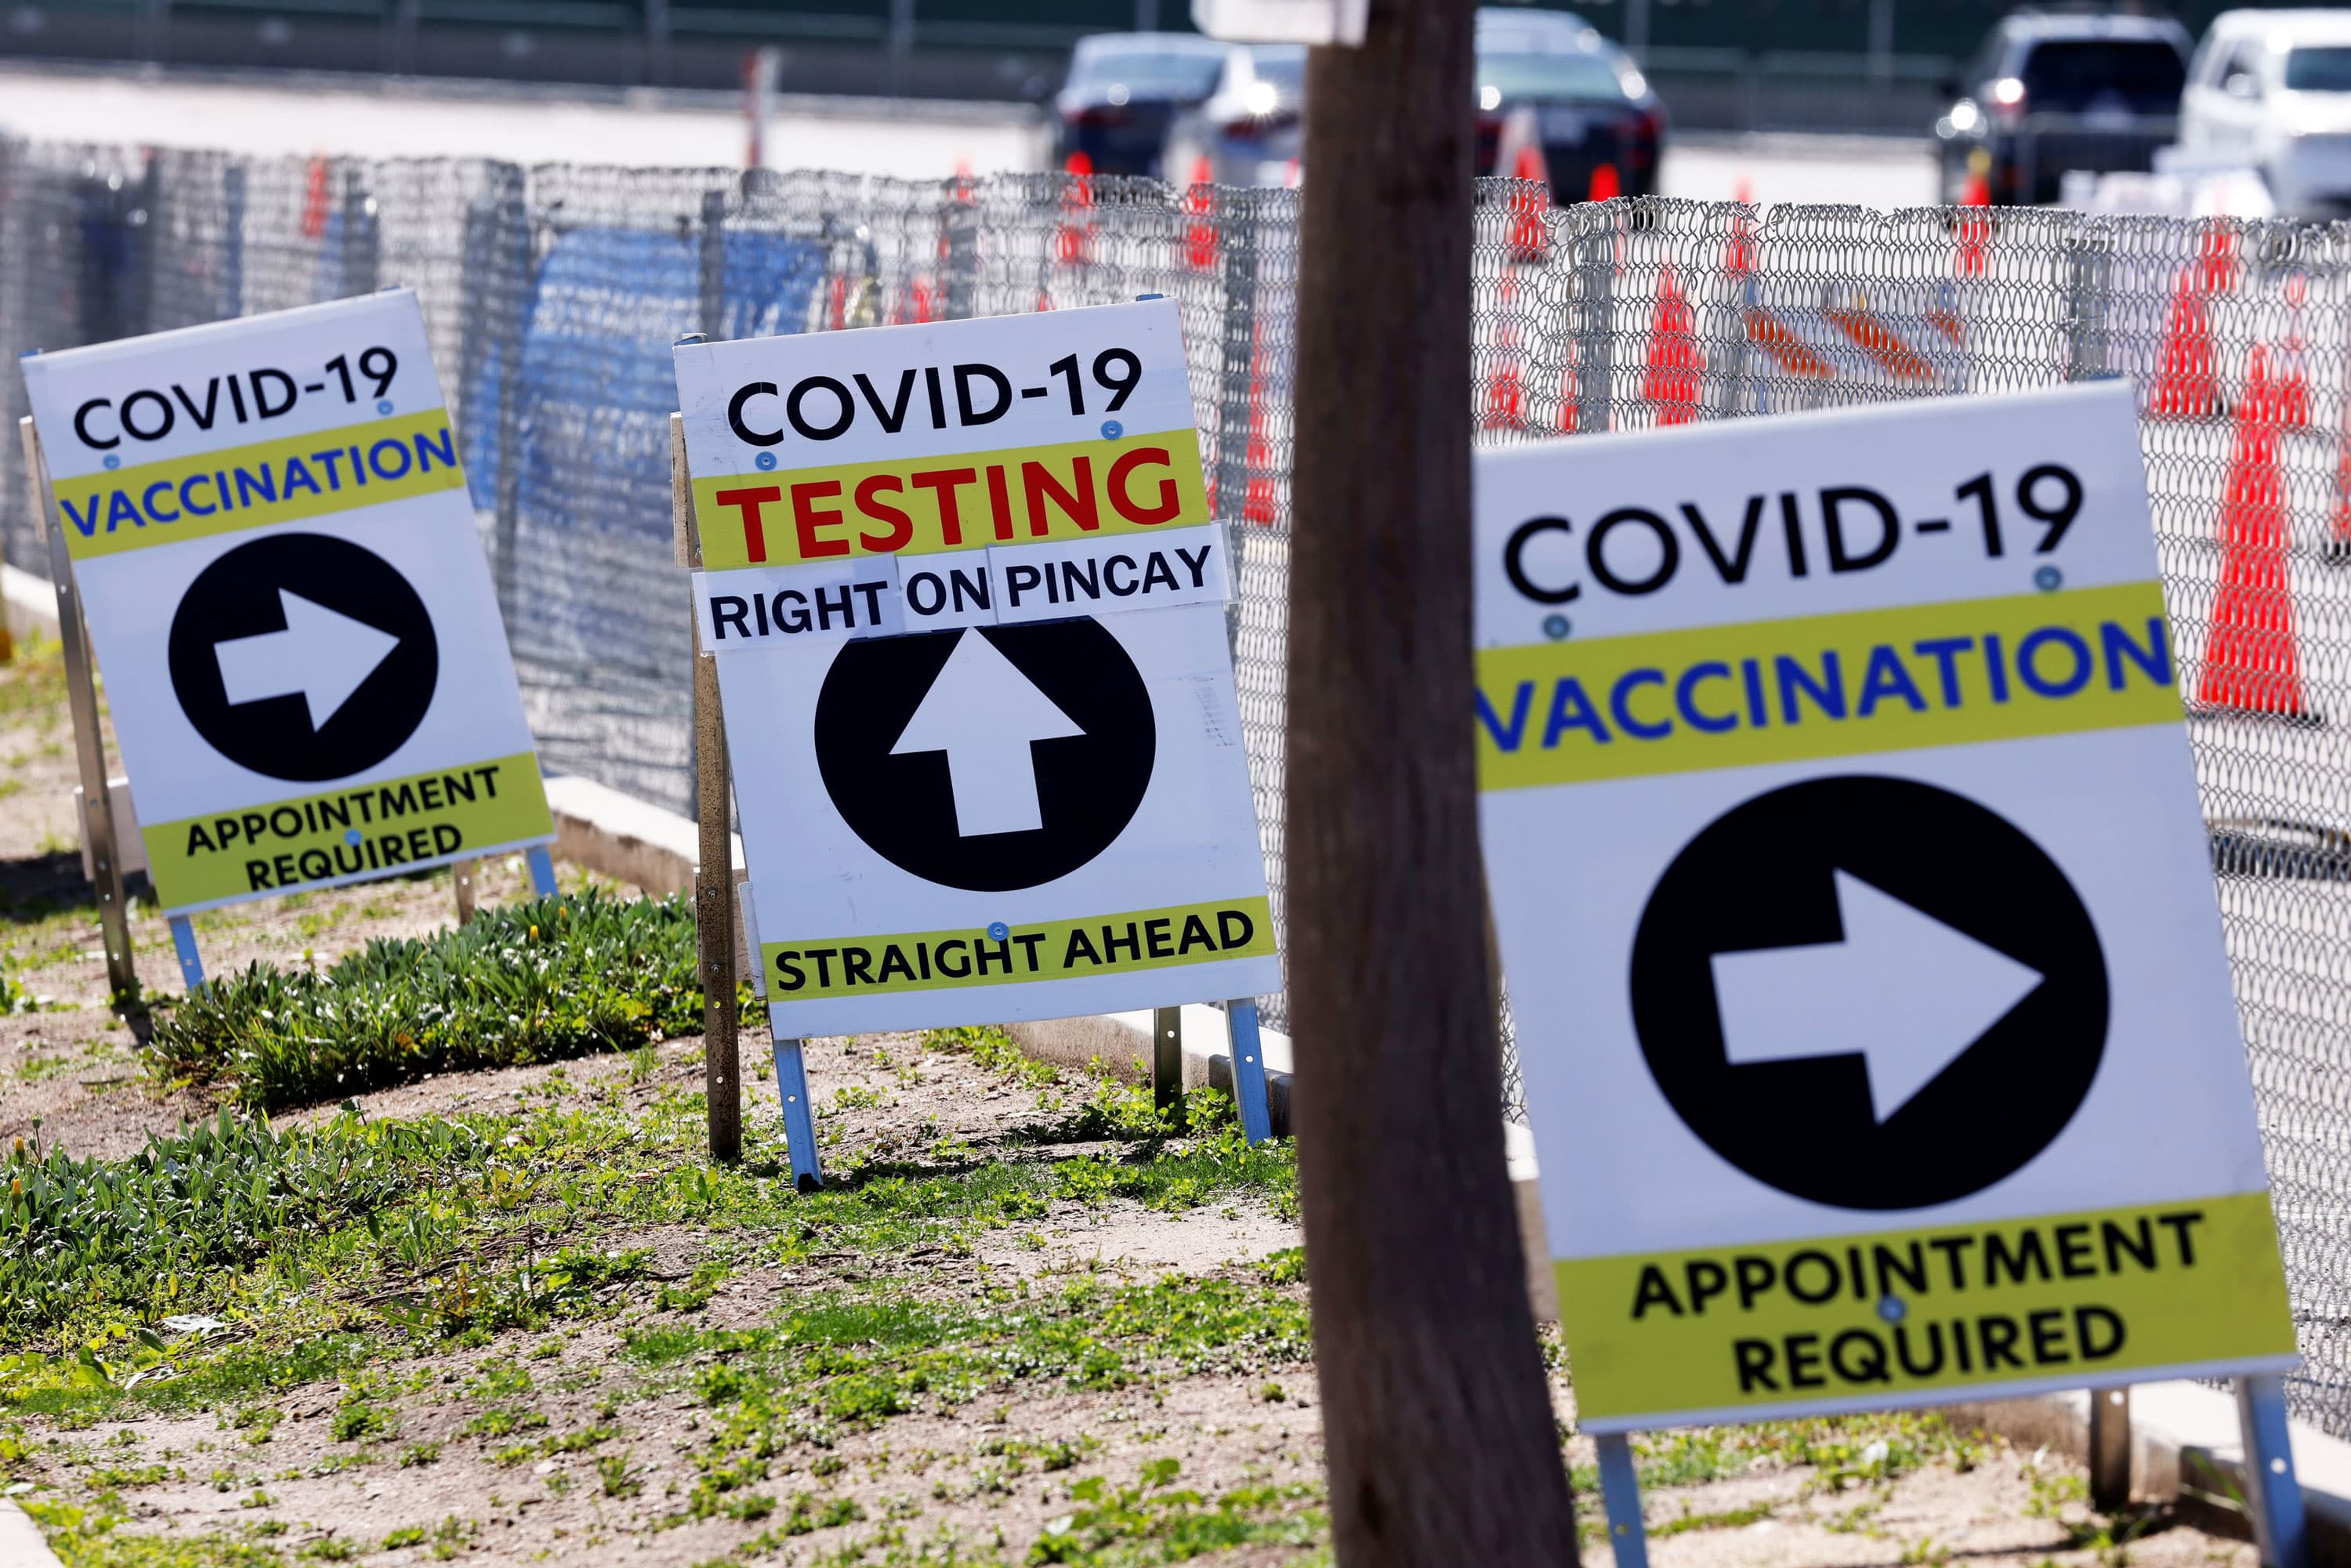 www.cnbc.com: Covid updates: Vaccination sites added to Apple Maps; millions will receive stimulus checks Wednesday